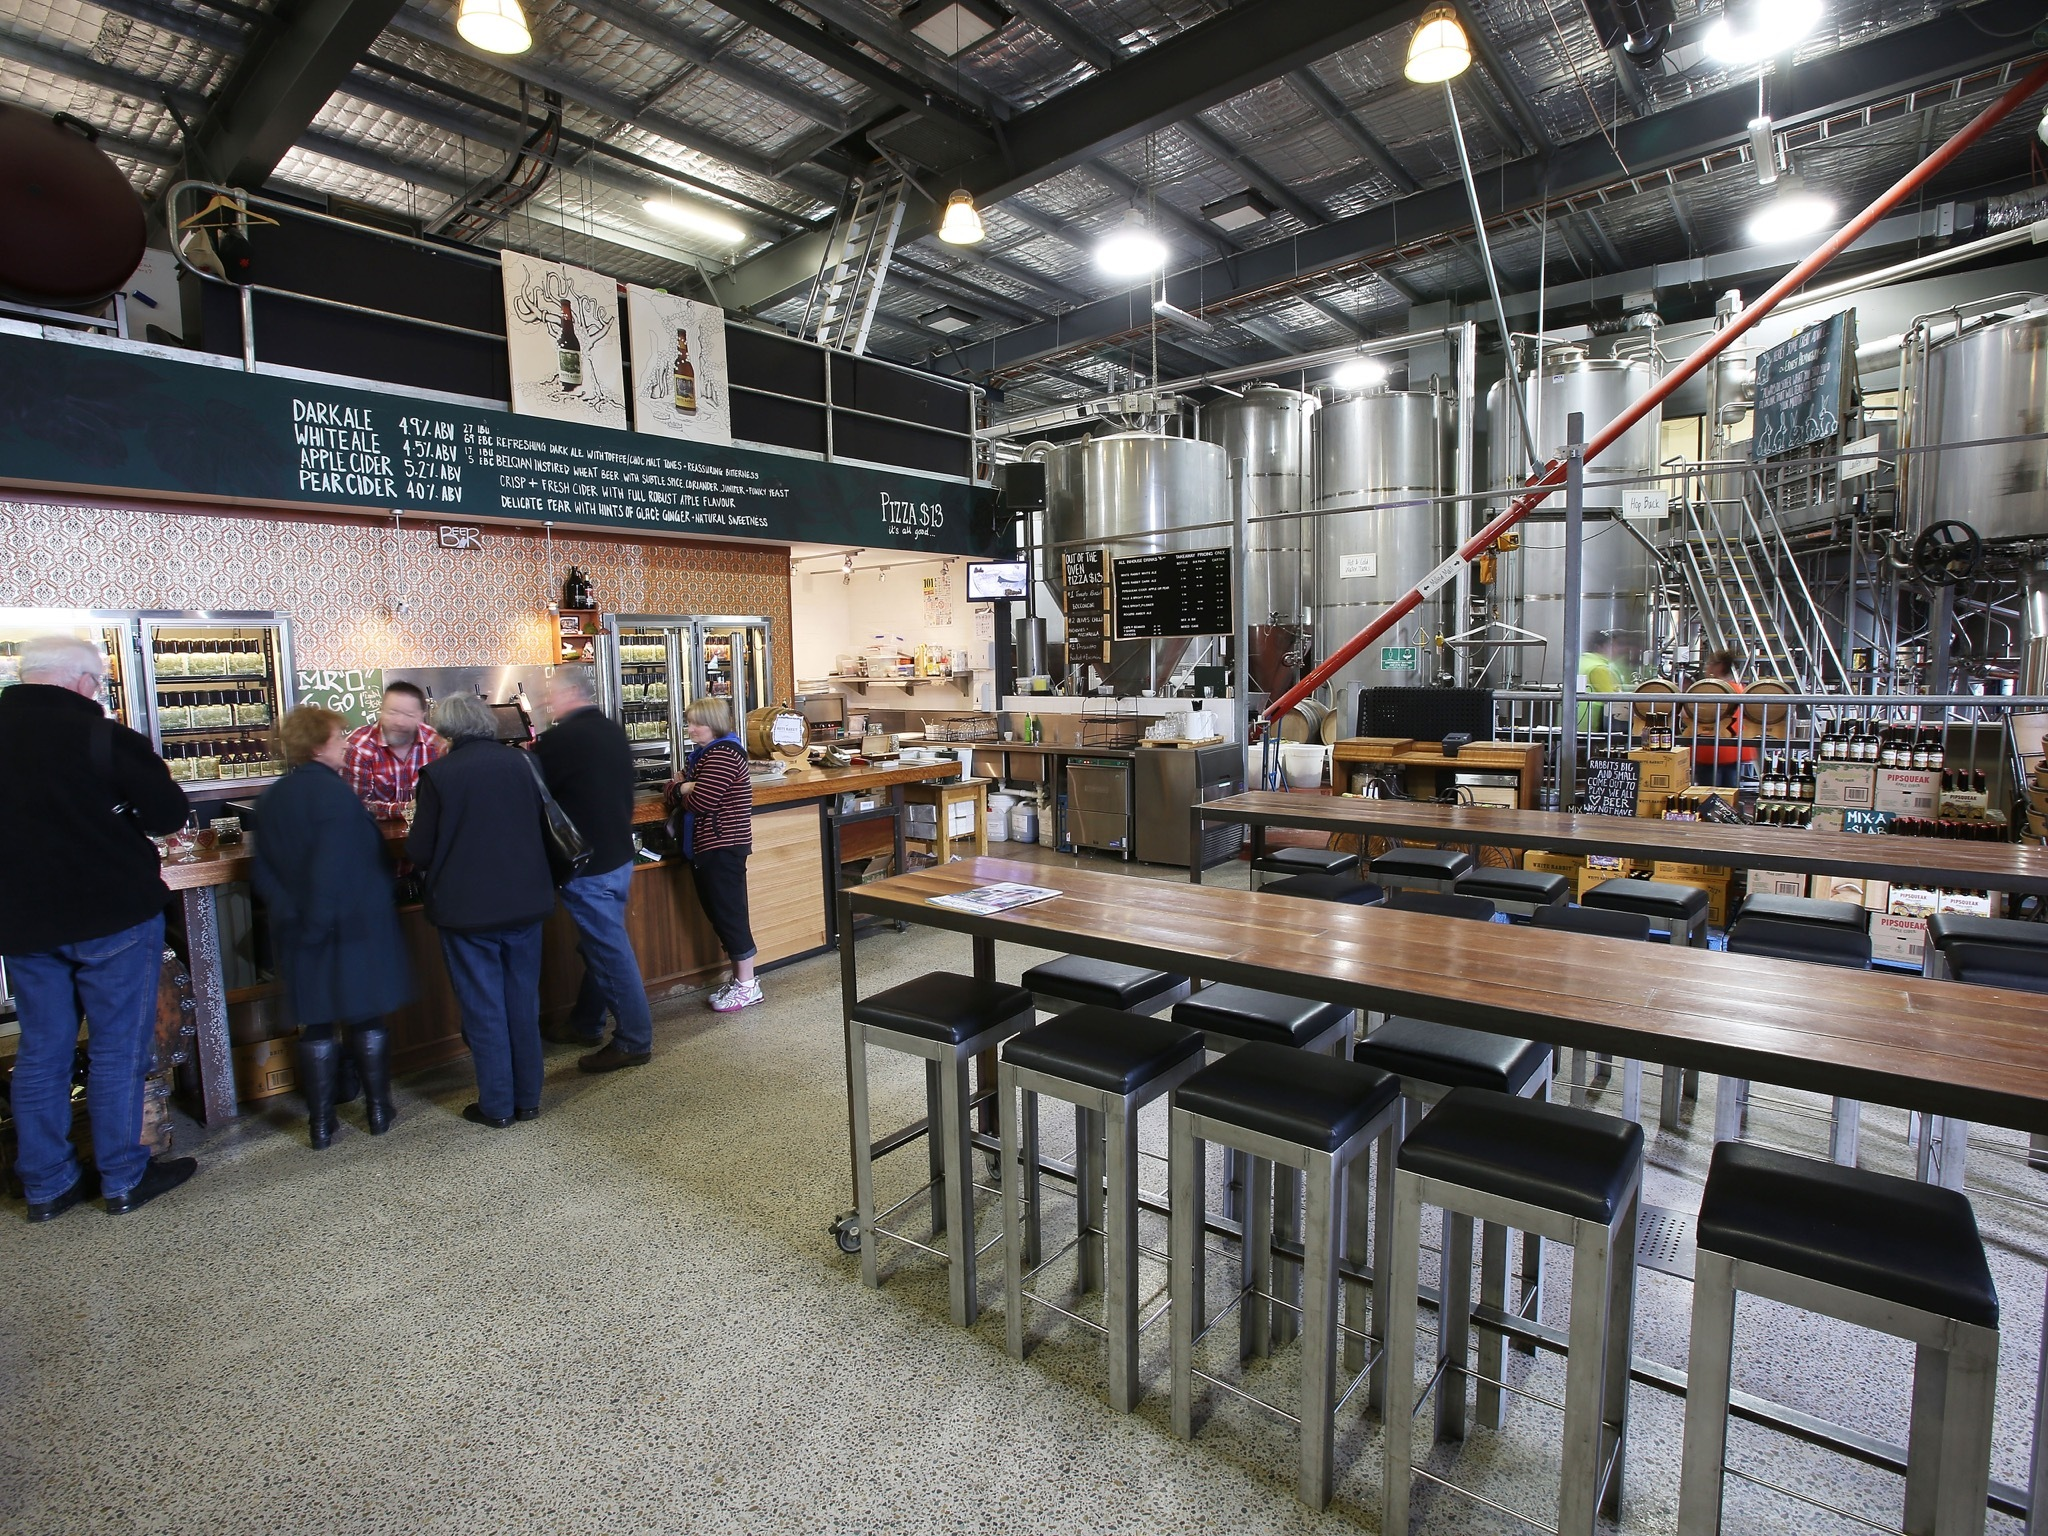 An interior shot at White Rabbit Brewery showing the bar and sea